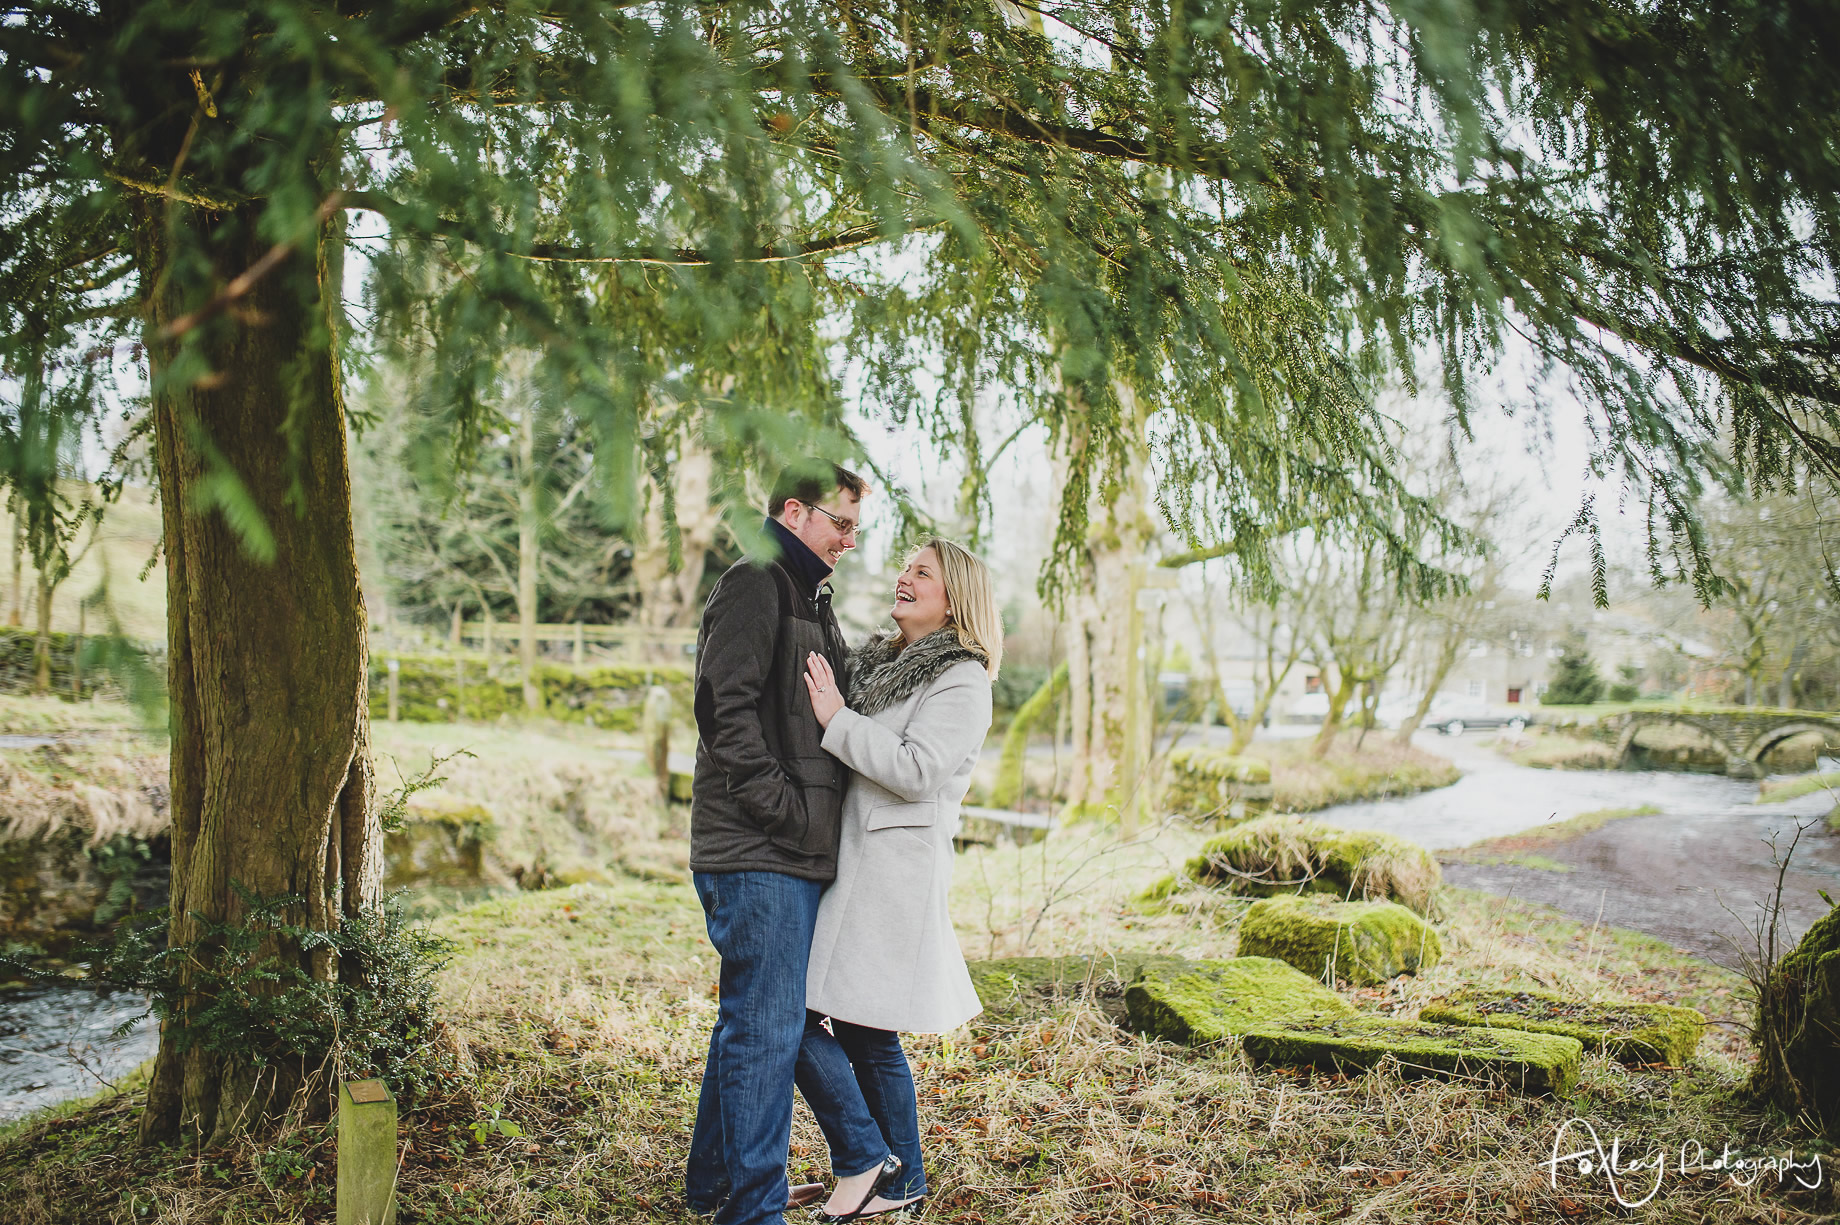 Rebecca and Paul's Pre-Wedding Shoot at Wycoller Country Park 023